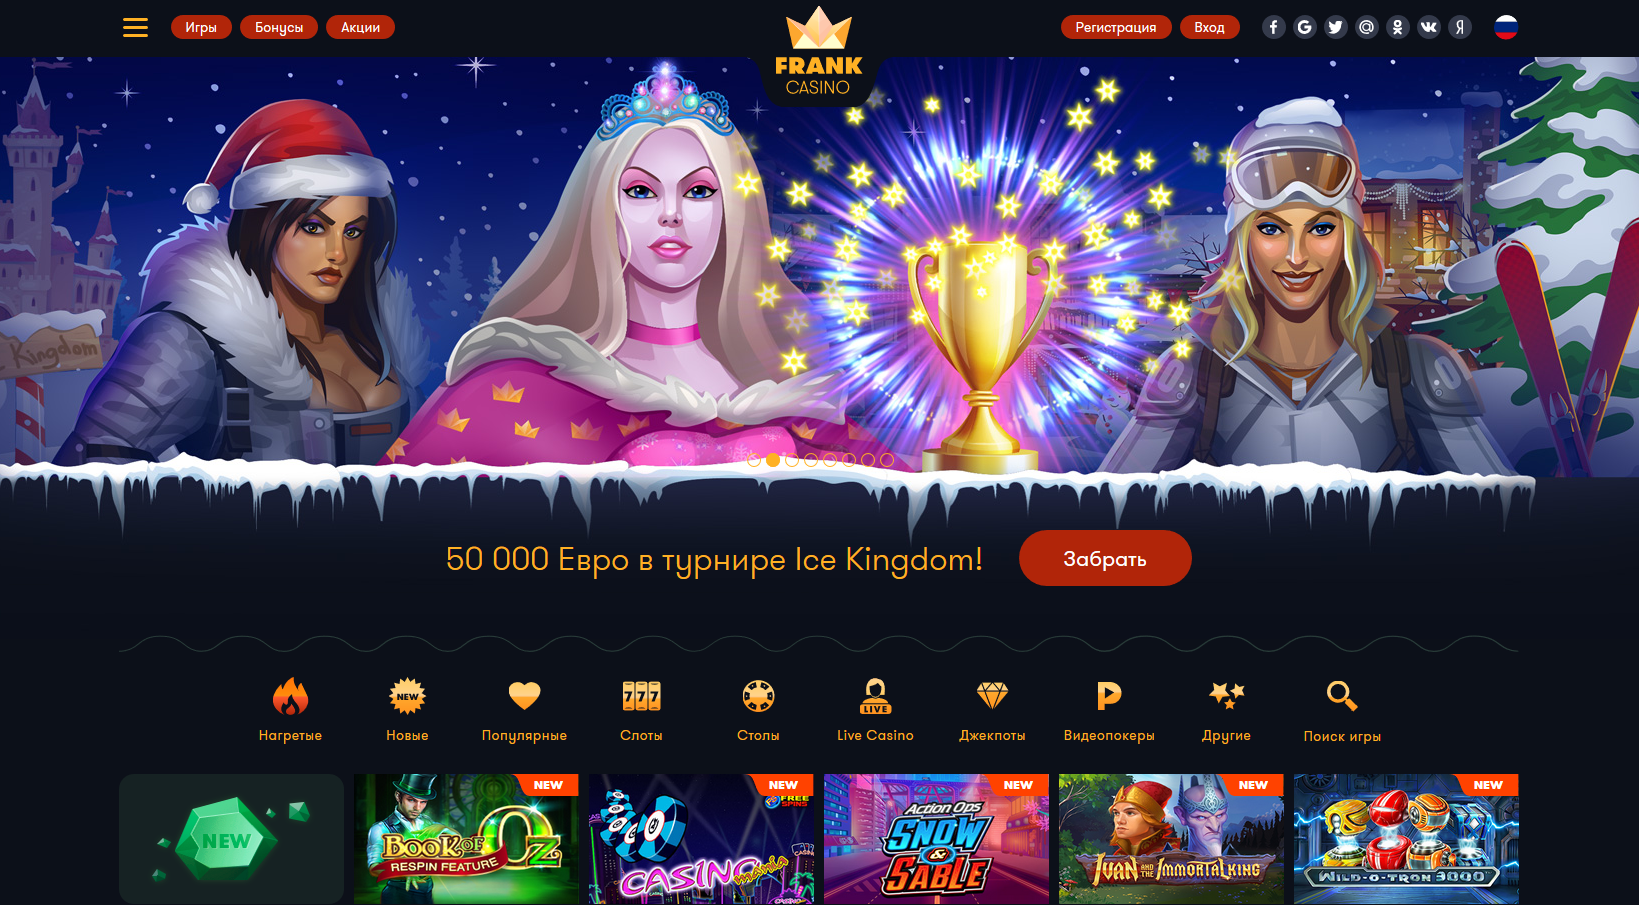 официальный сайт https neverplay ru 4 frank casino html